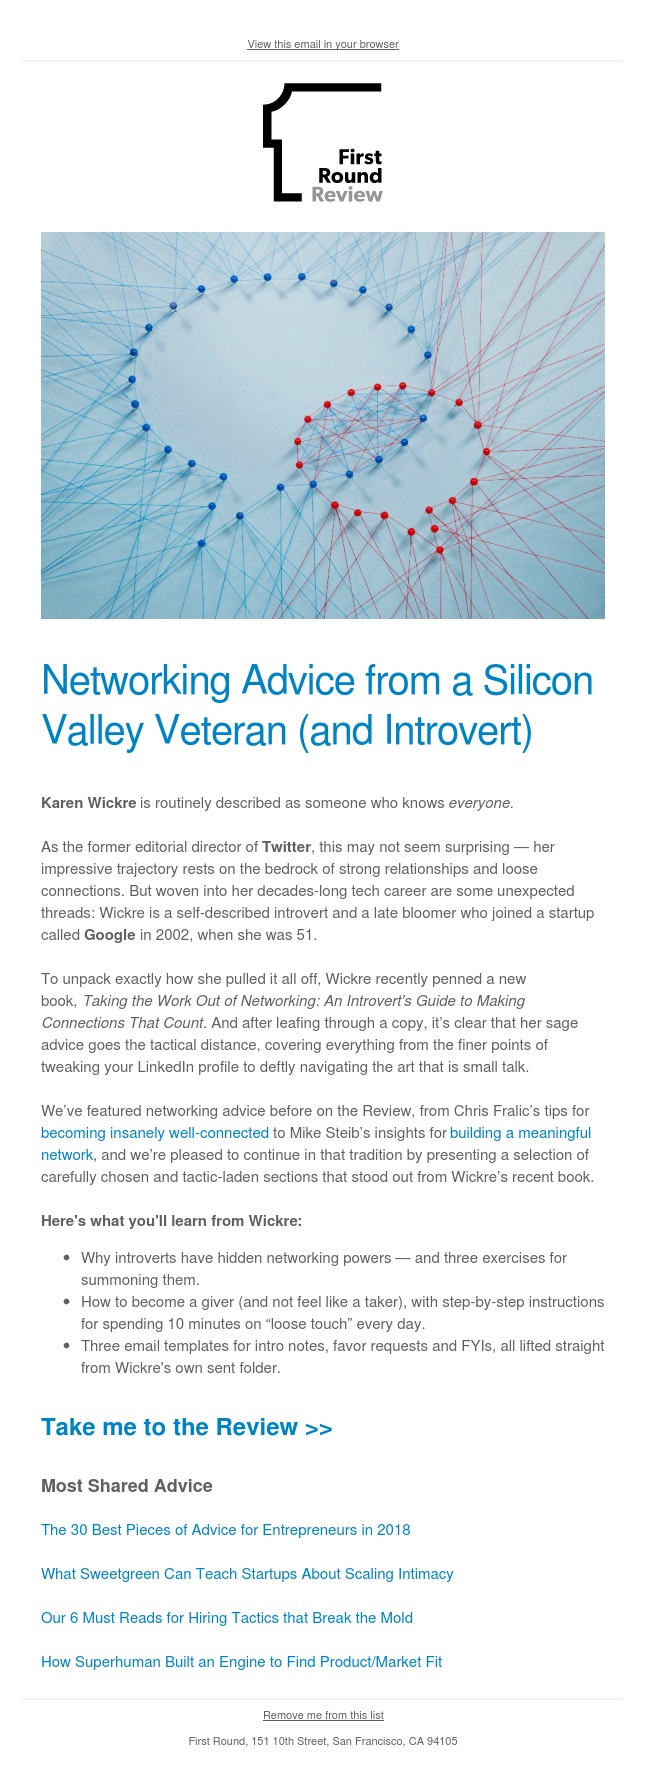 Networking advice from an introverted Silicon Valley veteran